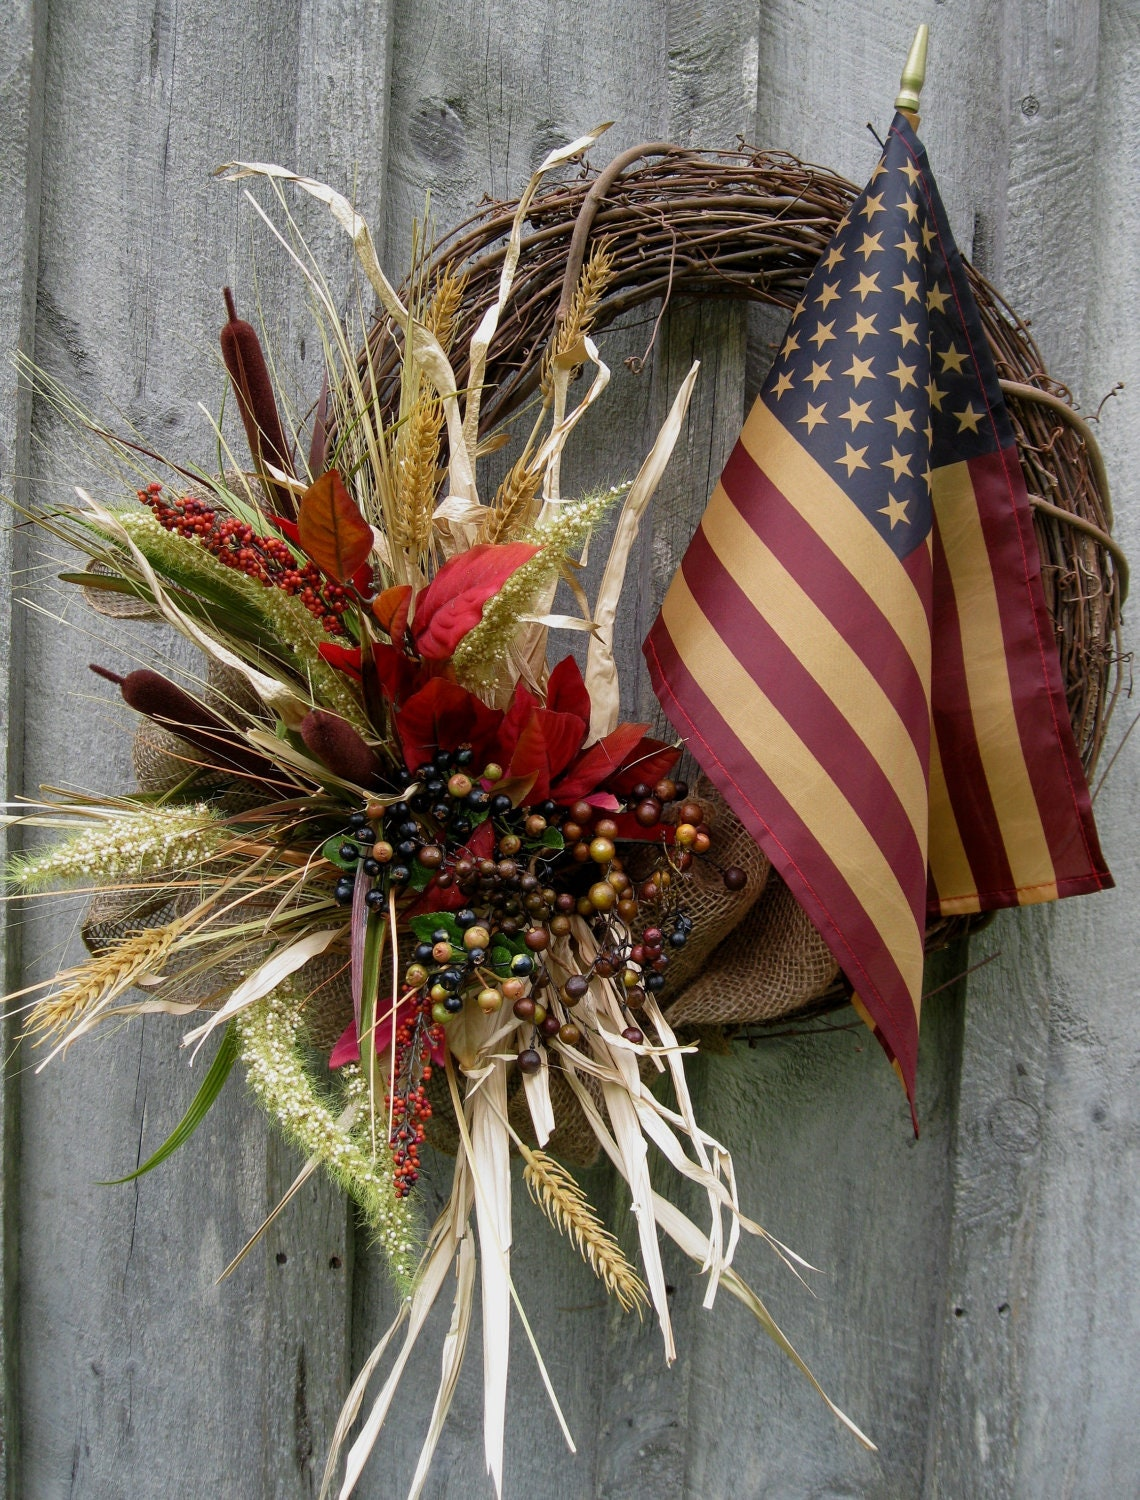 Autumn wreaths fall wreath americana fall door d cor Fall autumn door wreaths